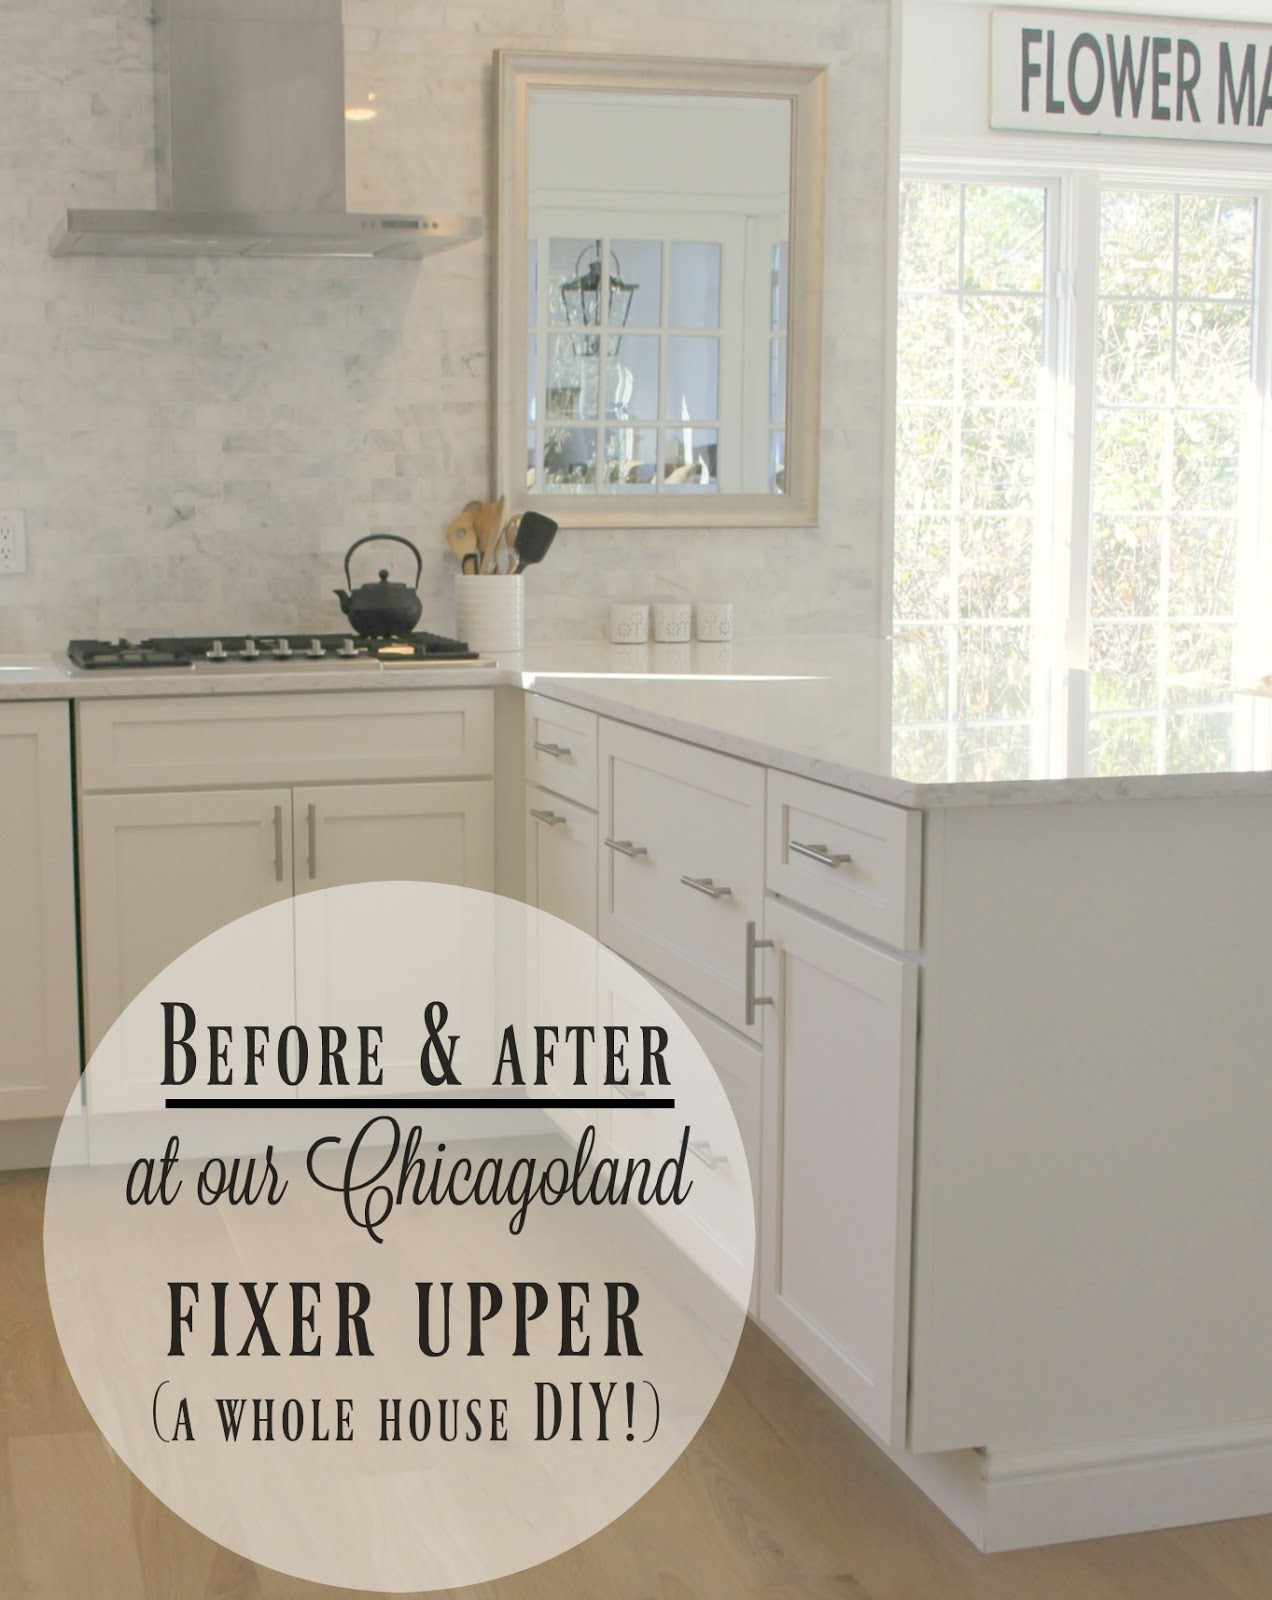 Fixer upper kitchen knobs - Fixer Upper 1